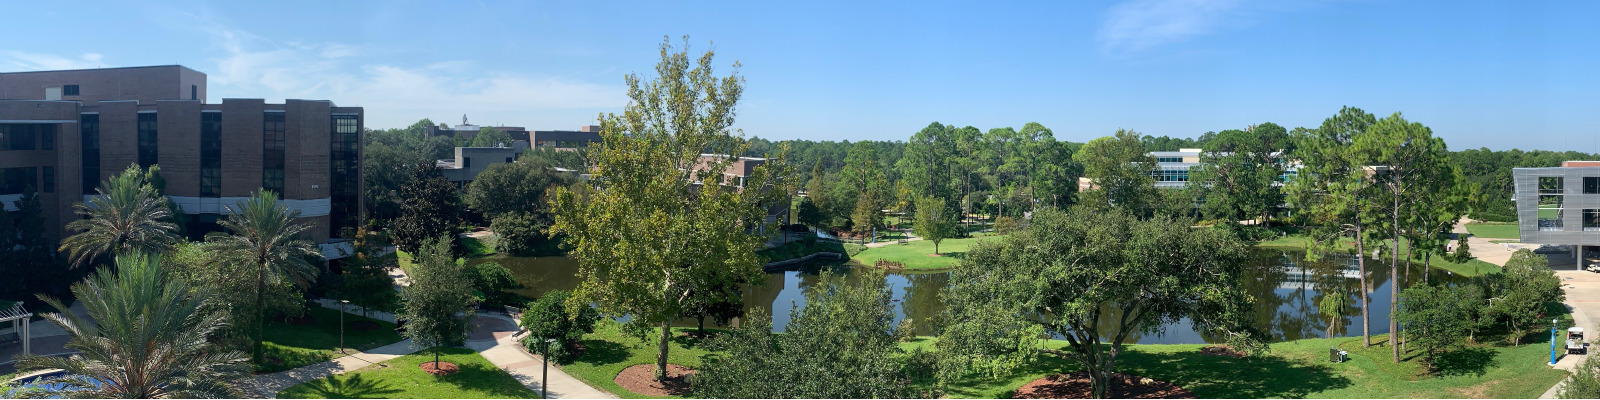 panoramic image of UNF's campus showing a lake and trees